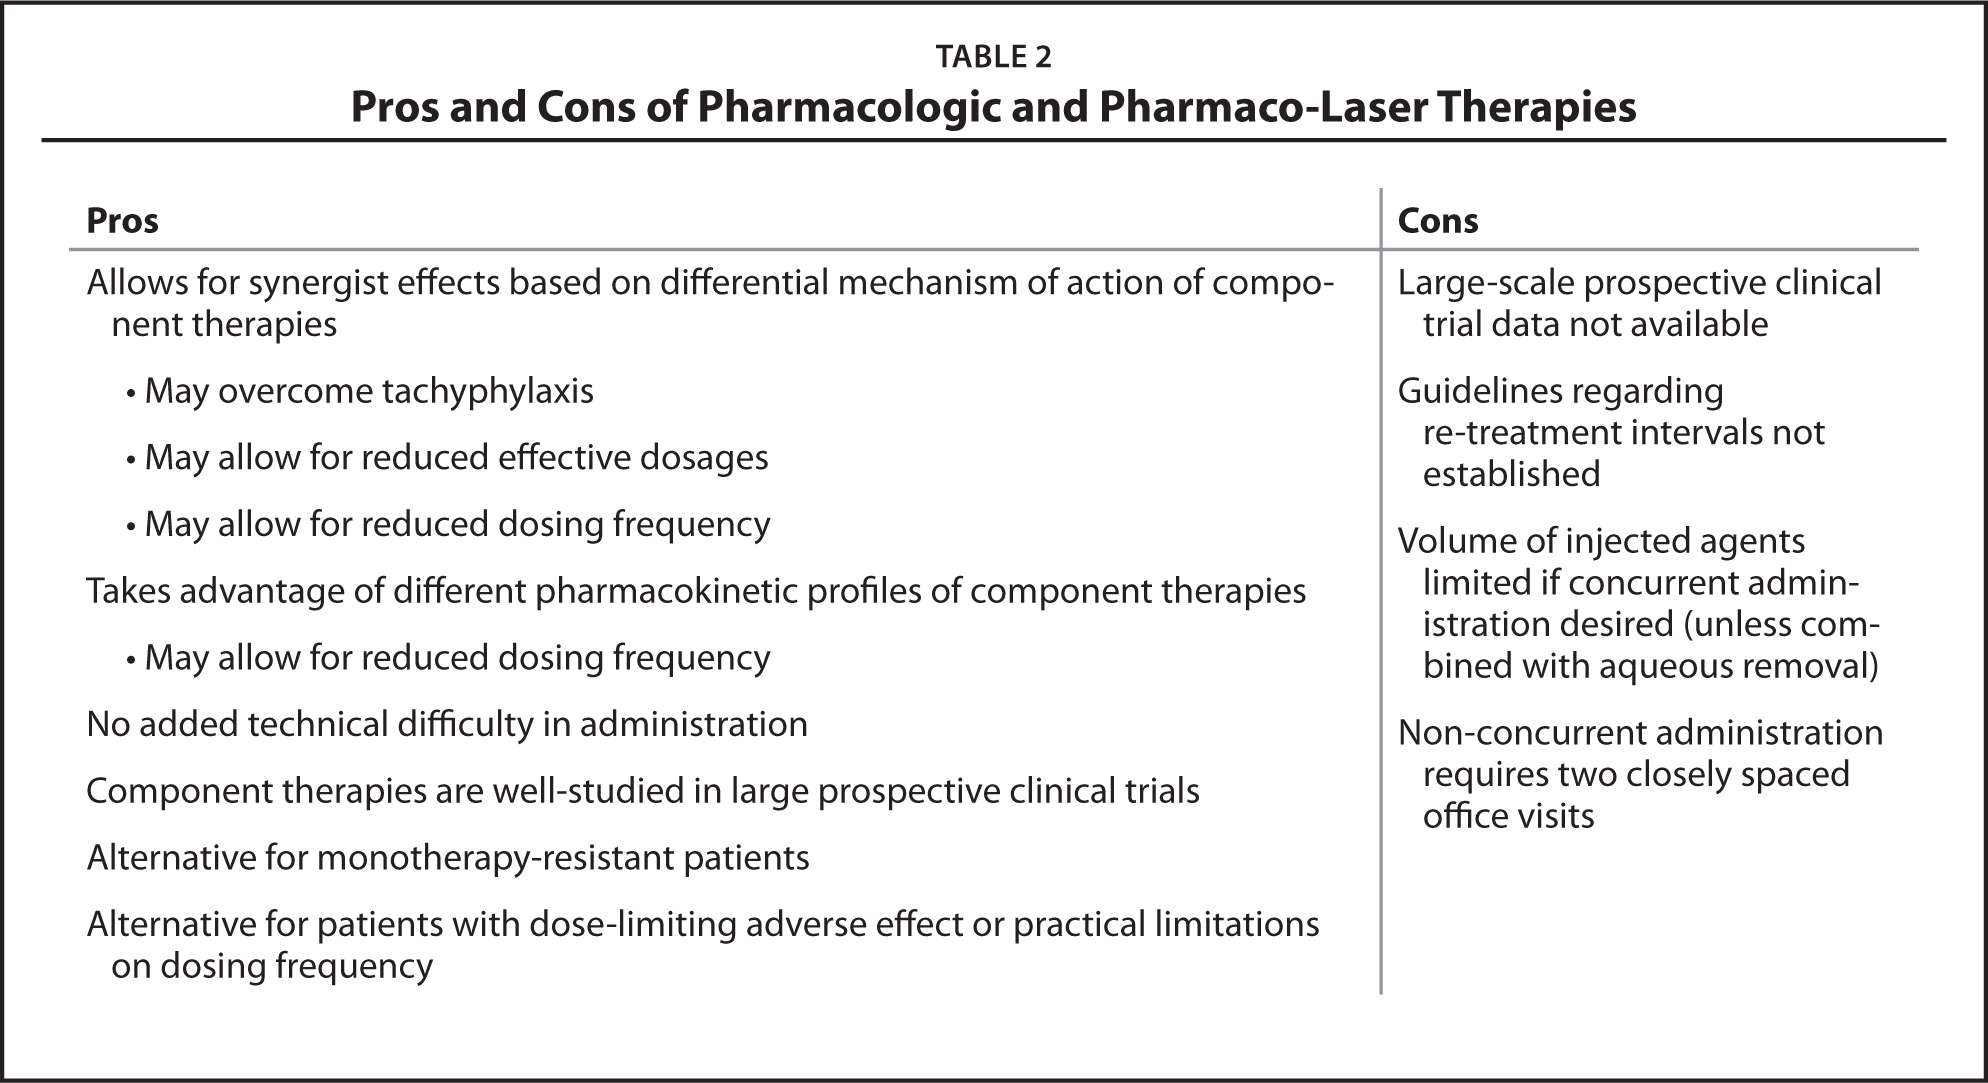 Pros and Cons of Pharmacologic and Pharmaco-Laser Therapies